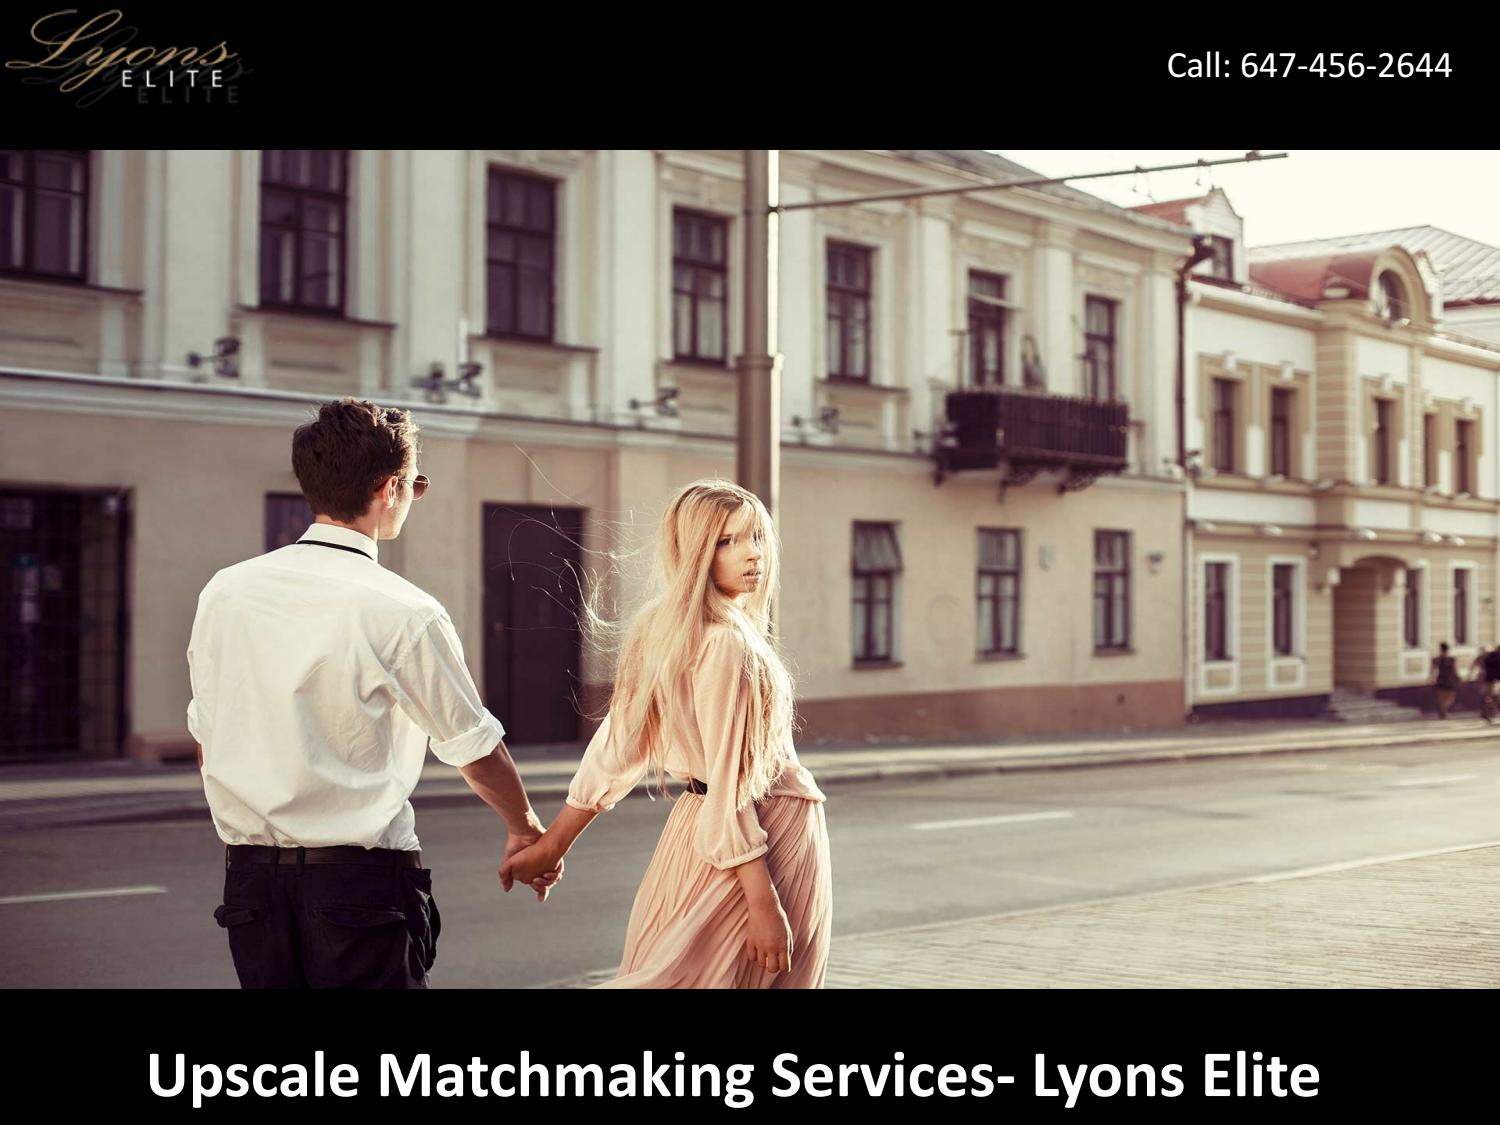 casually come Select singles dating service can recommend